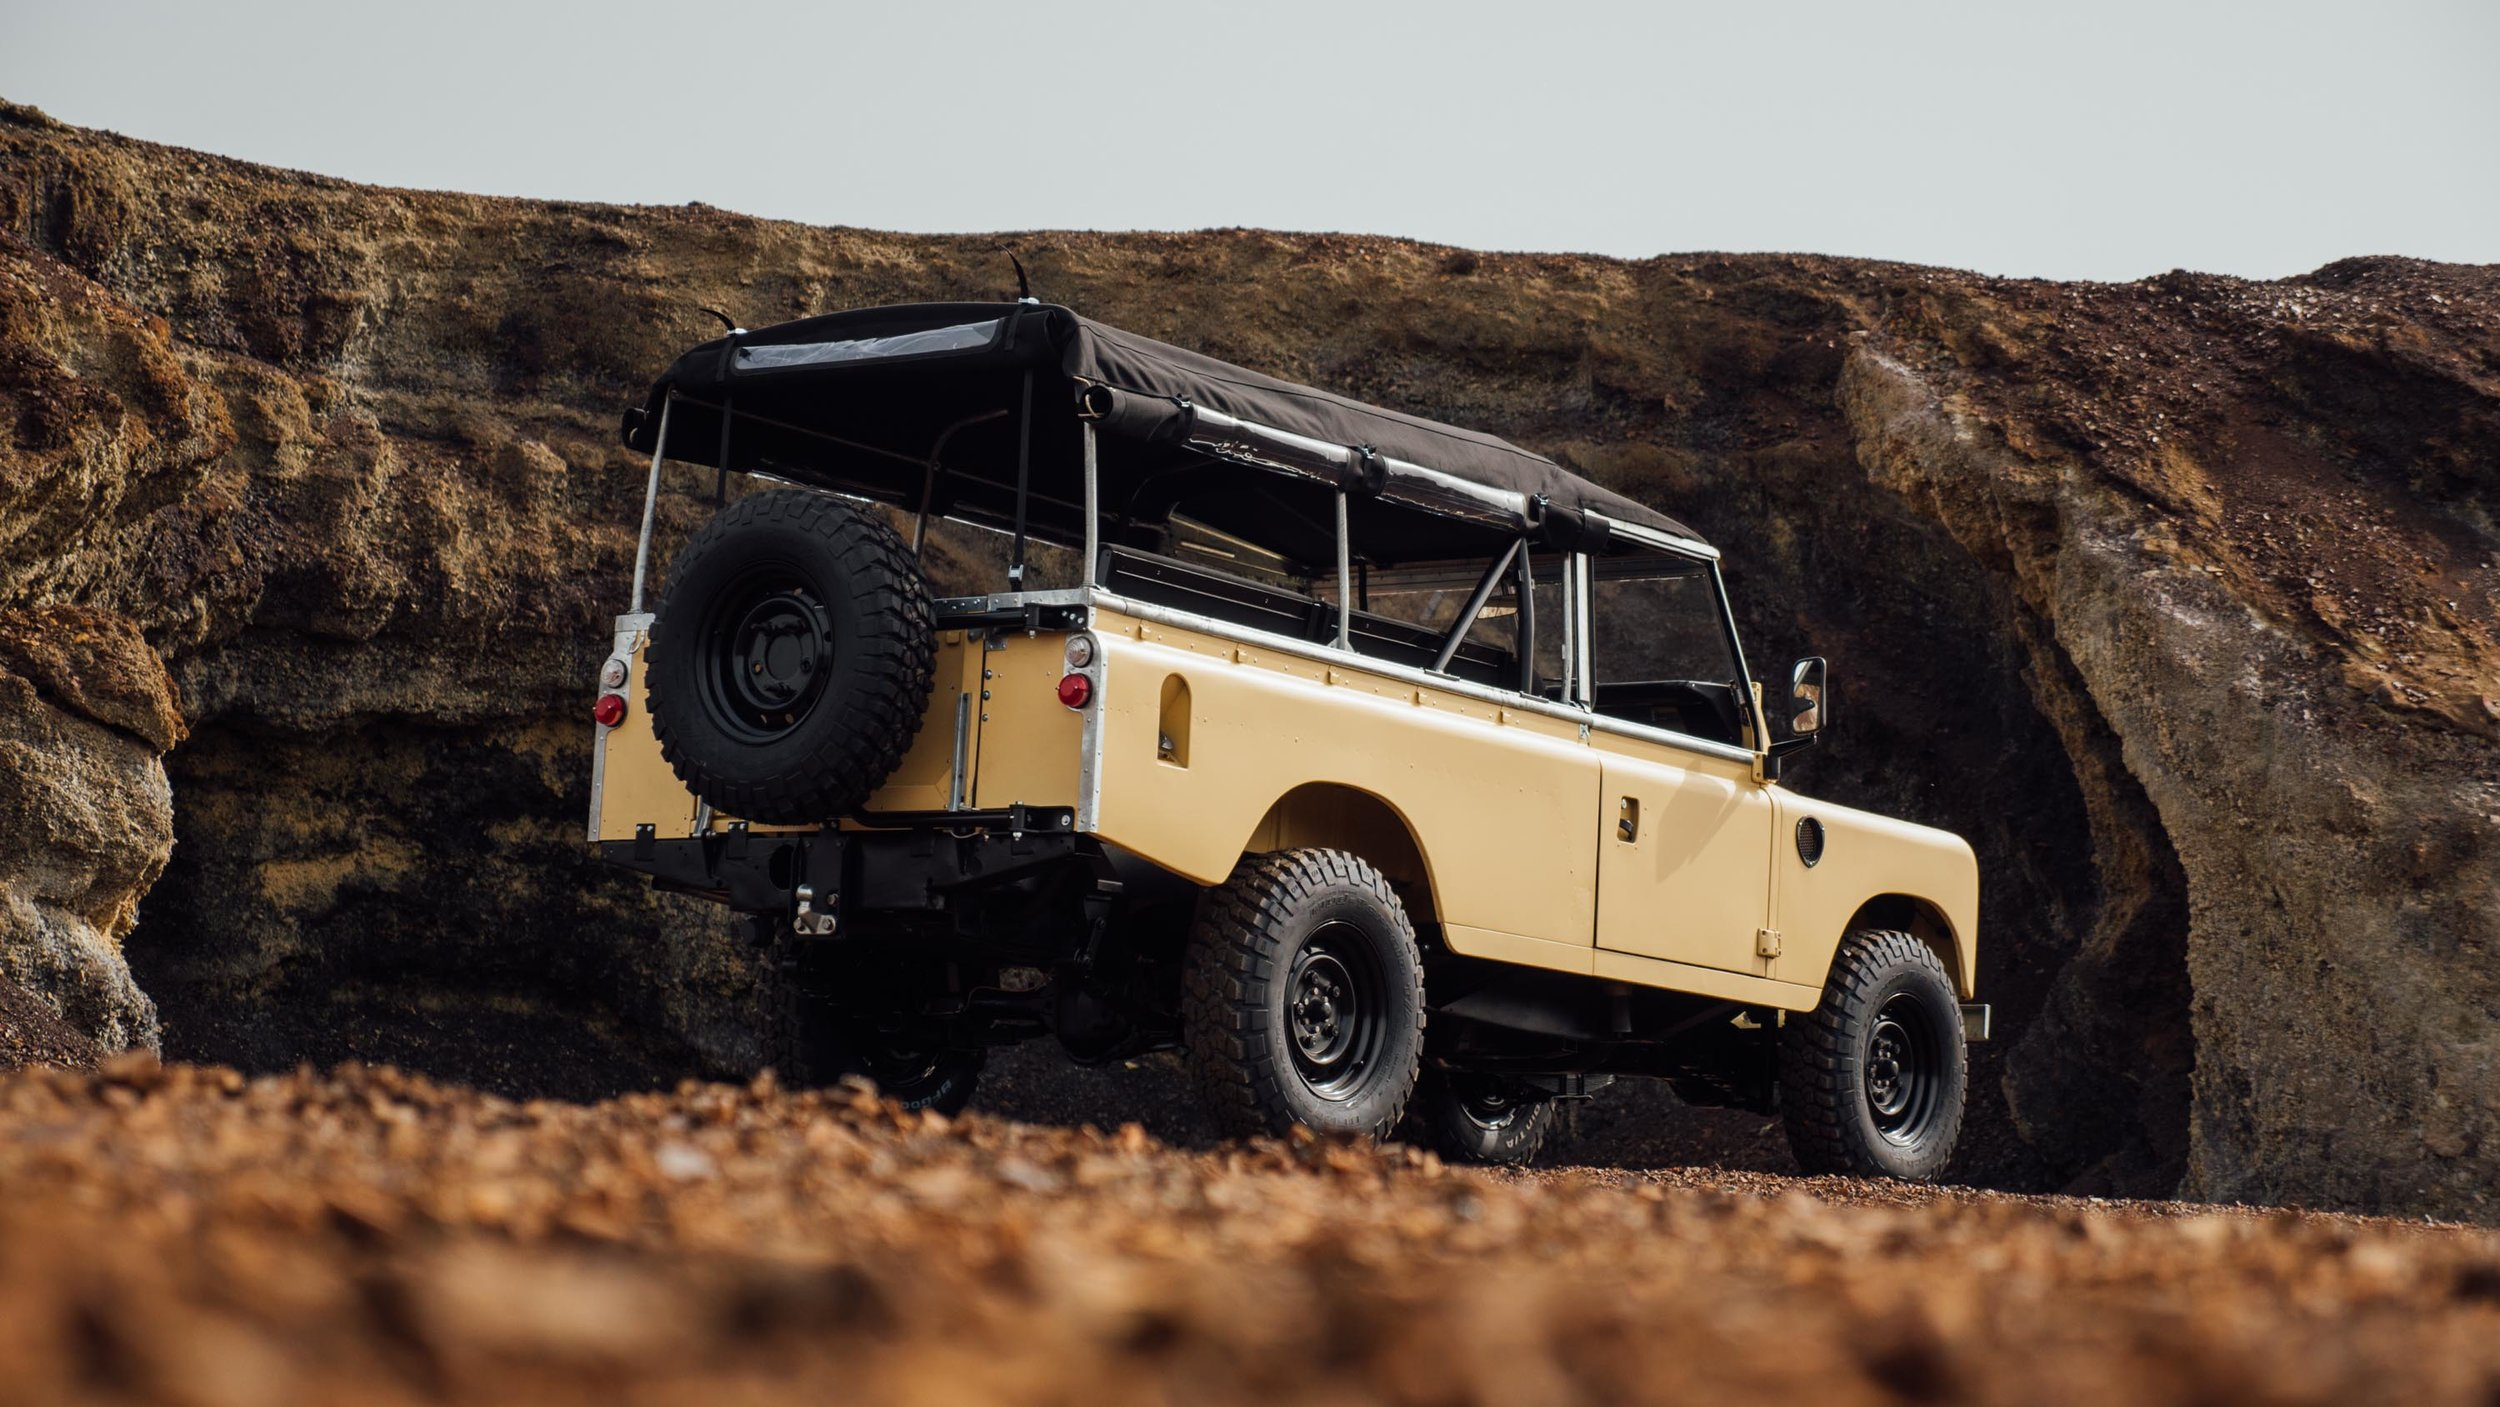 coolnvintage Land Rover S3 (150 of 207).jpg